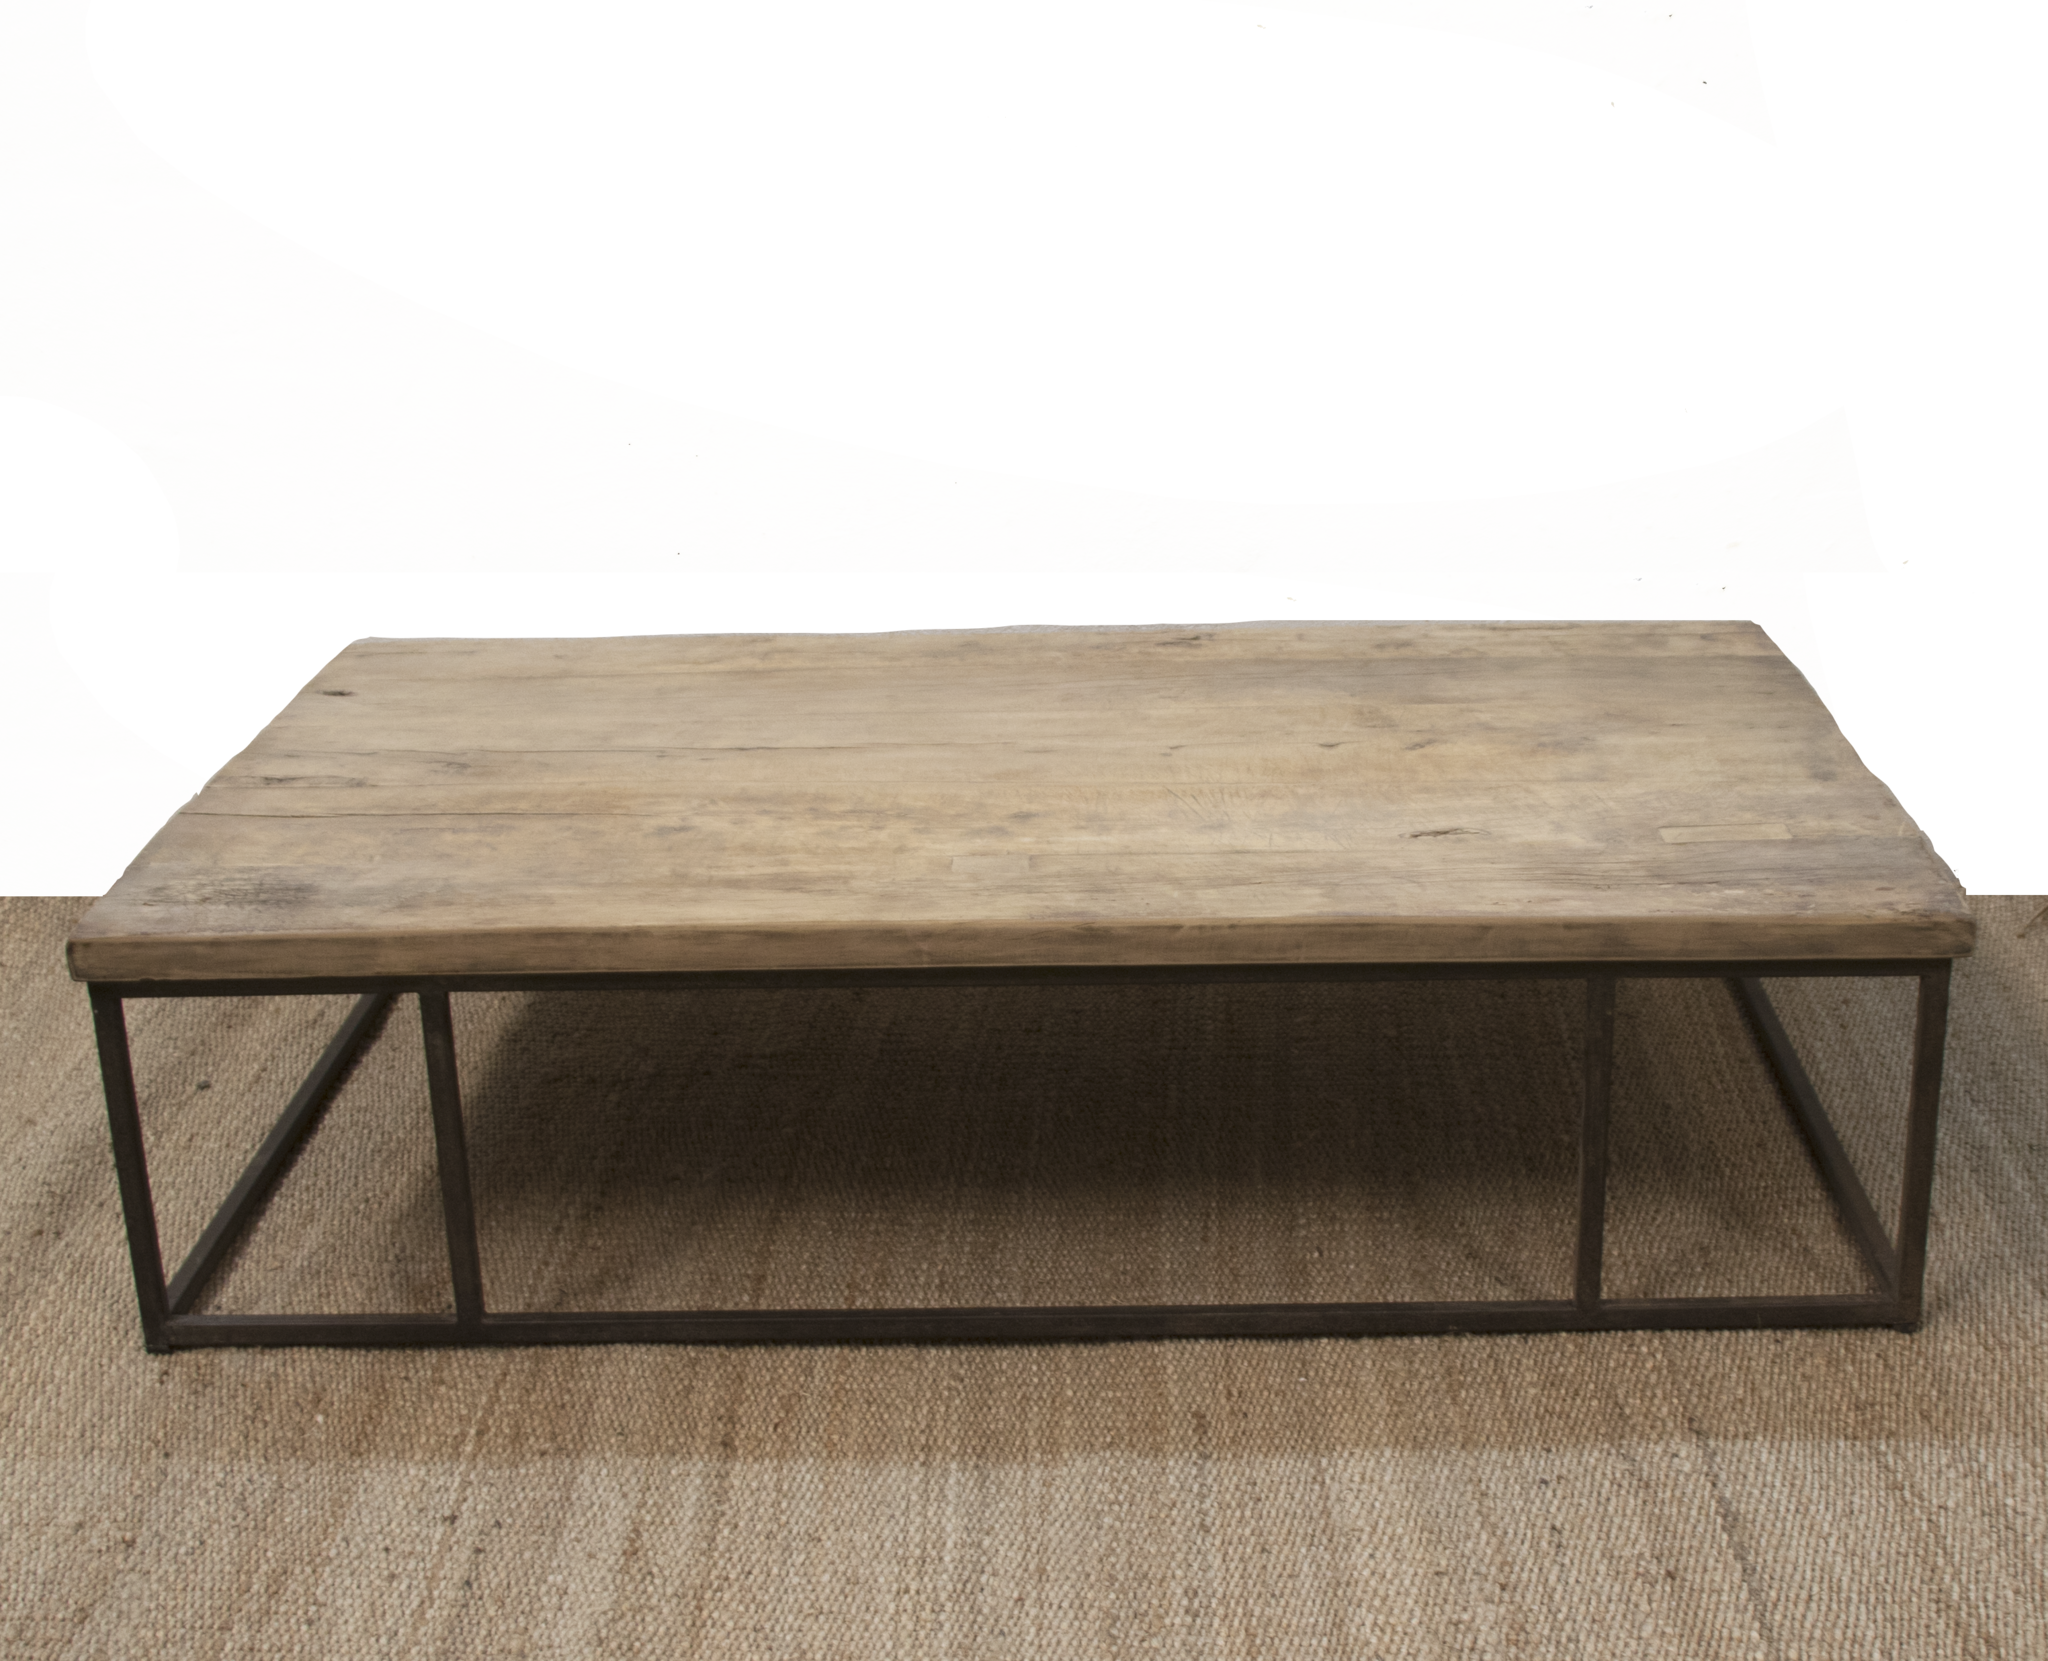 Industrial Raw Wood Coffee Table Metal Wood 150xw90xh40cm Unique Item Petite Lily Interiors